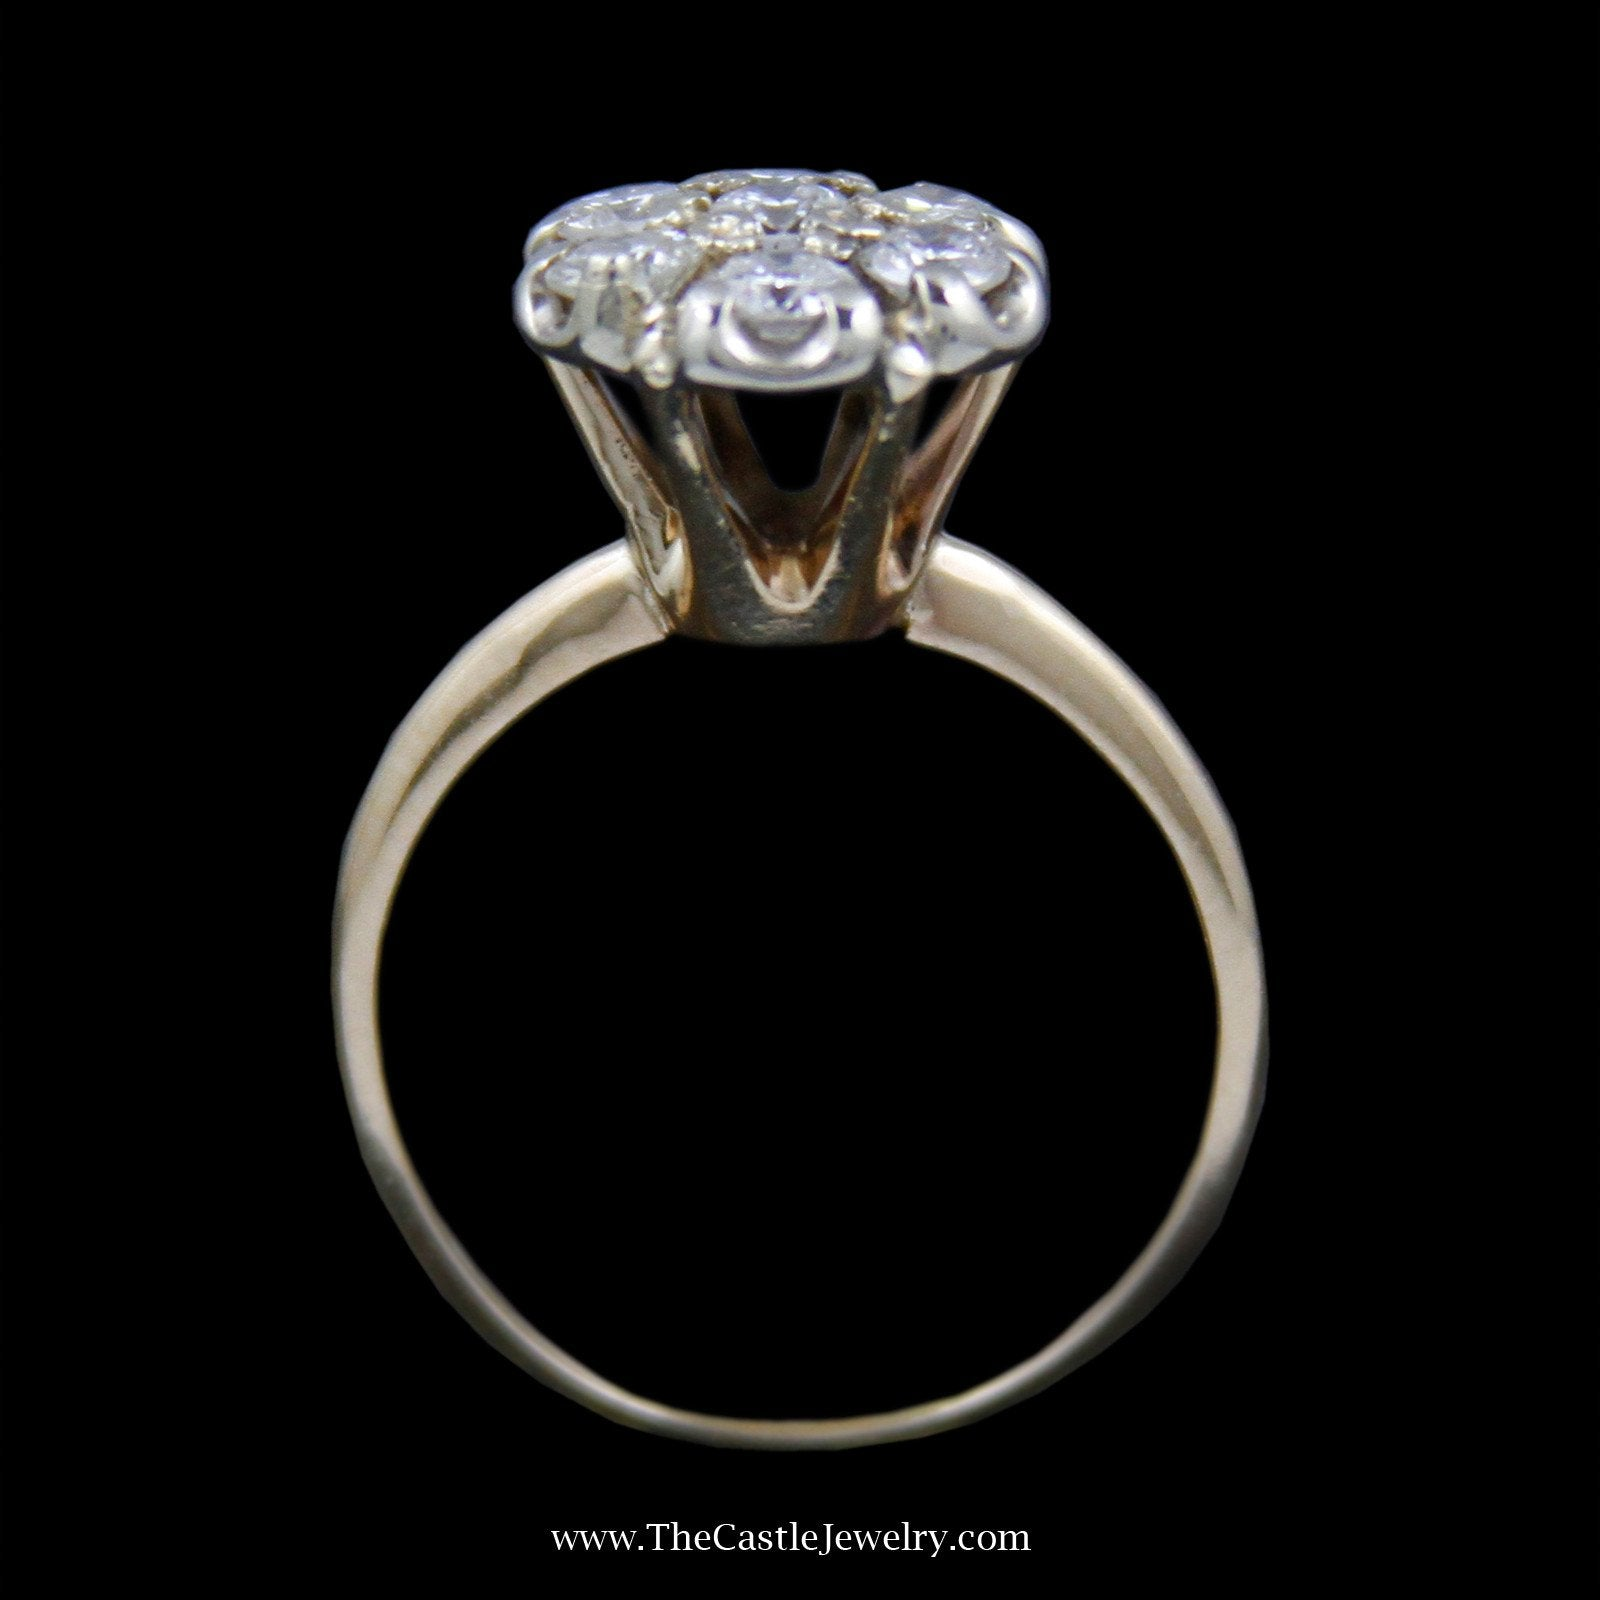 Stunning Round Diamond Cluster Ring w/ 7 Round Brilliant Cut Diamonds in 14k Yellow Gold-1